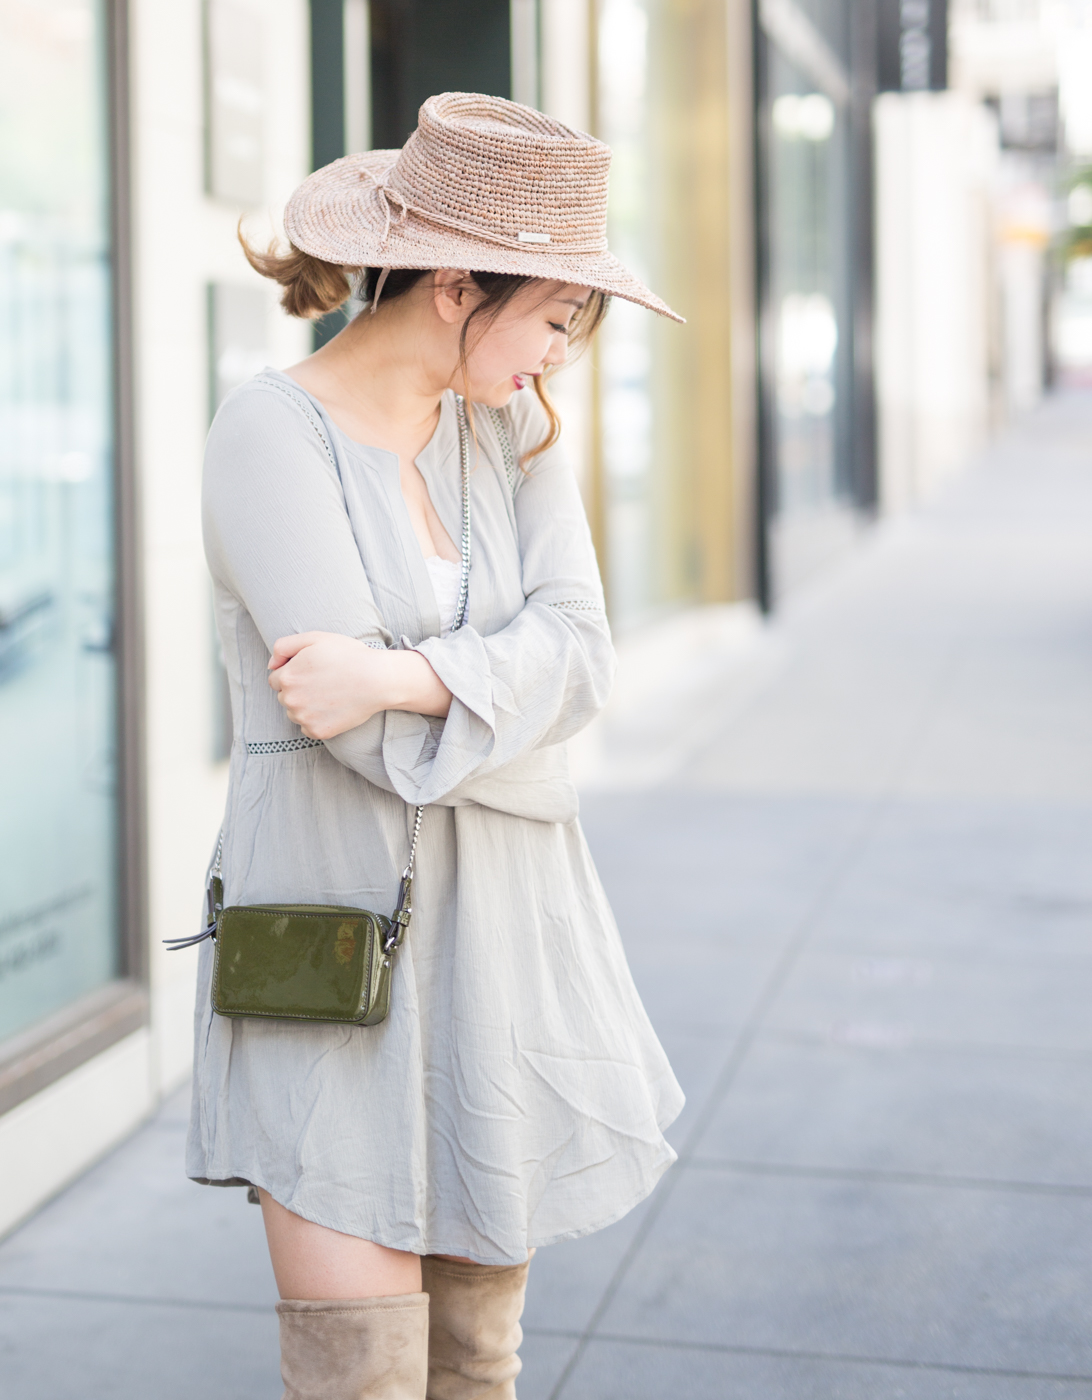 Tobi shift dress & San Diego Hat Co hat   The Chic Diary